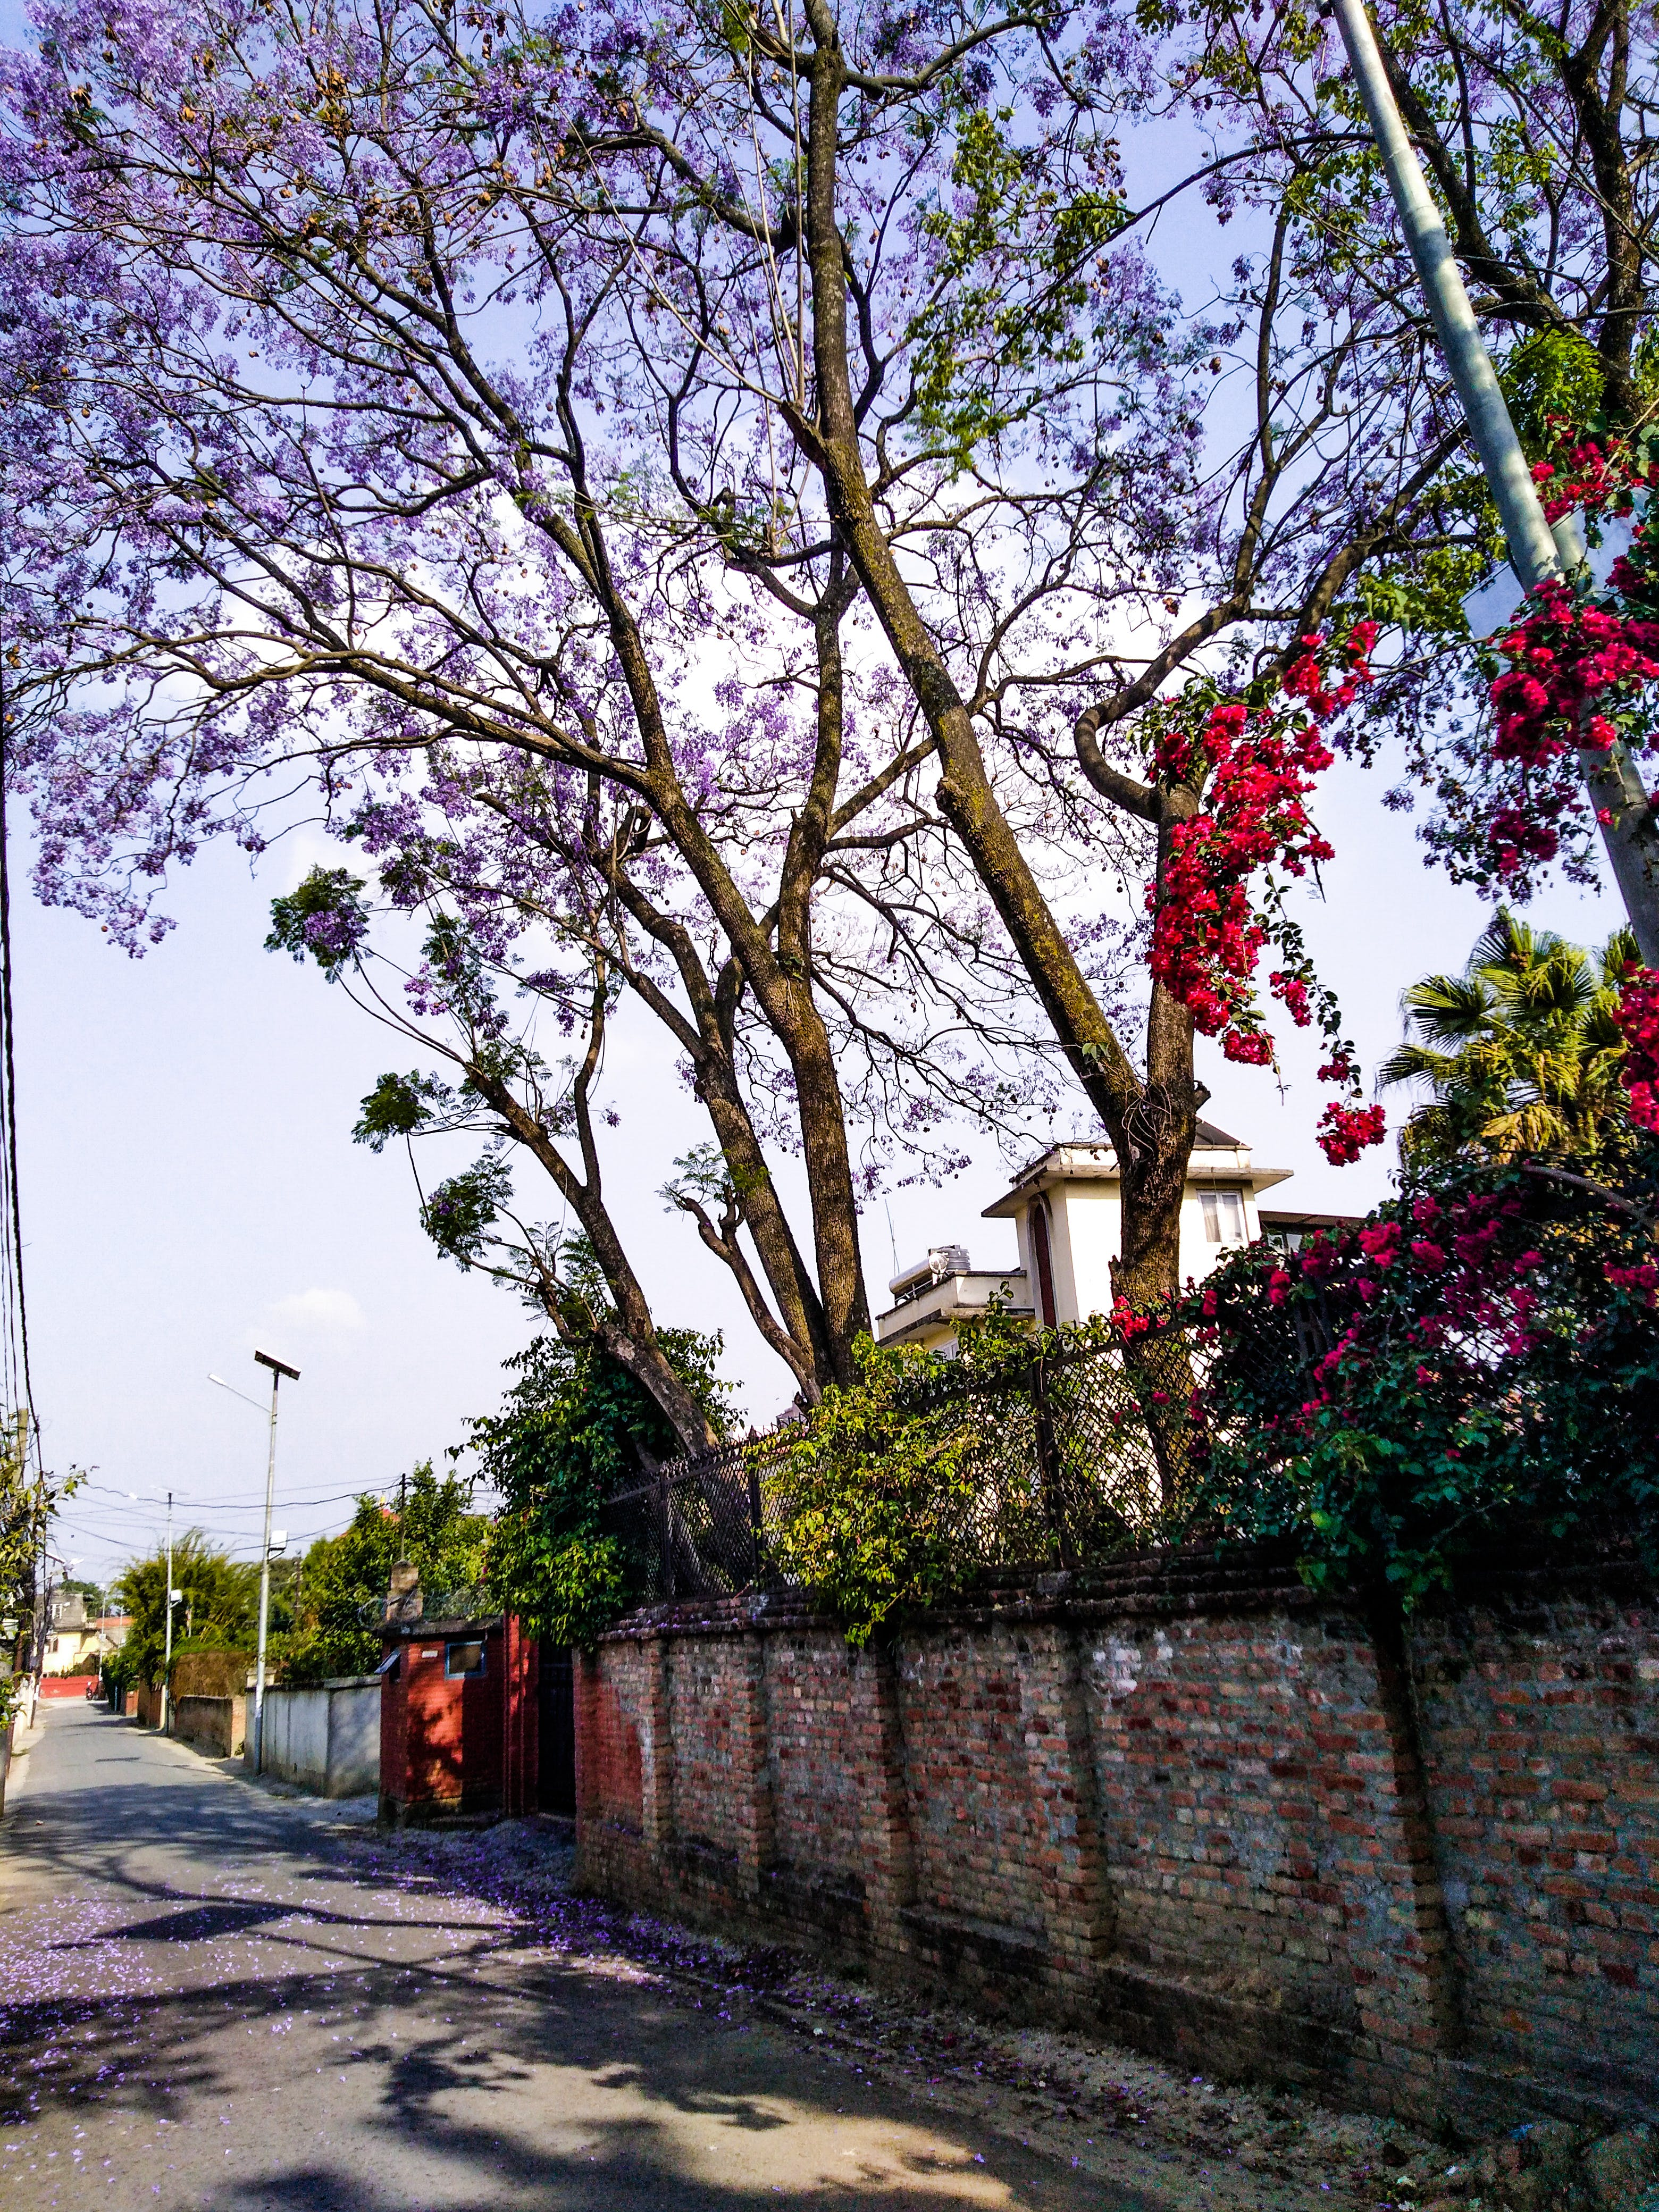 Free stock photo of blue flowers, lalitpur, patan, red flowers